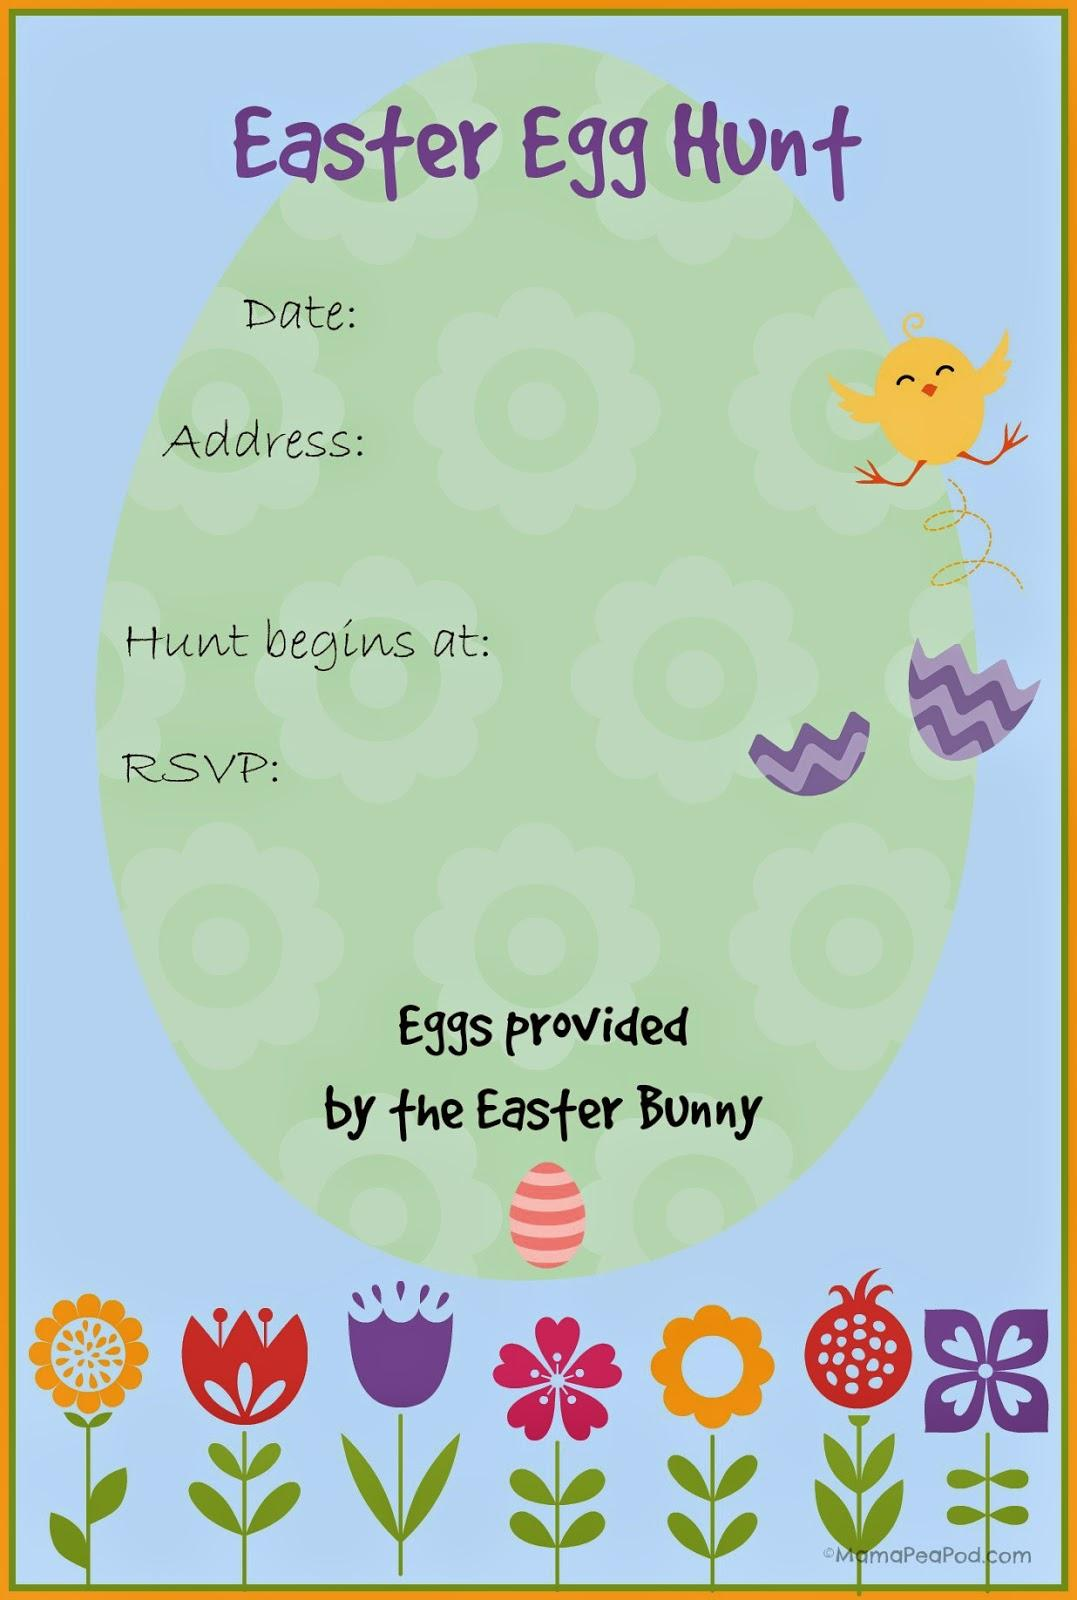 Easter Egg Hunt Invitation Templates